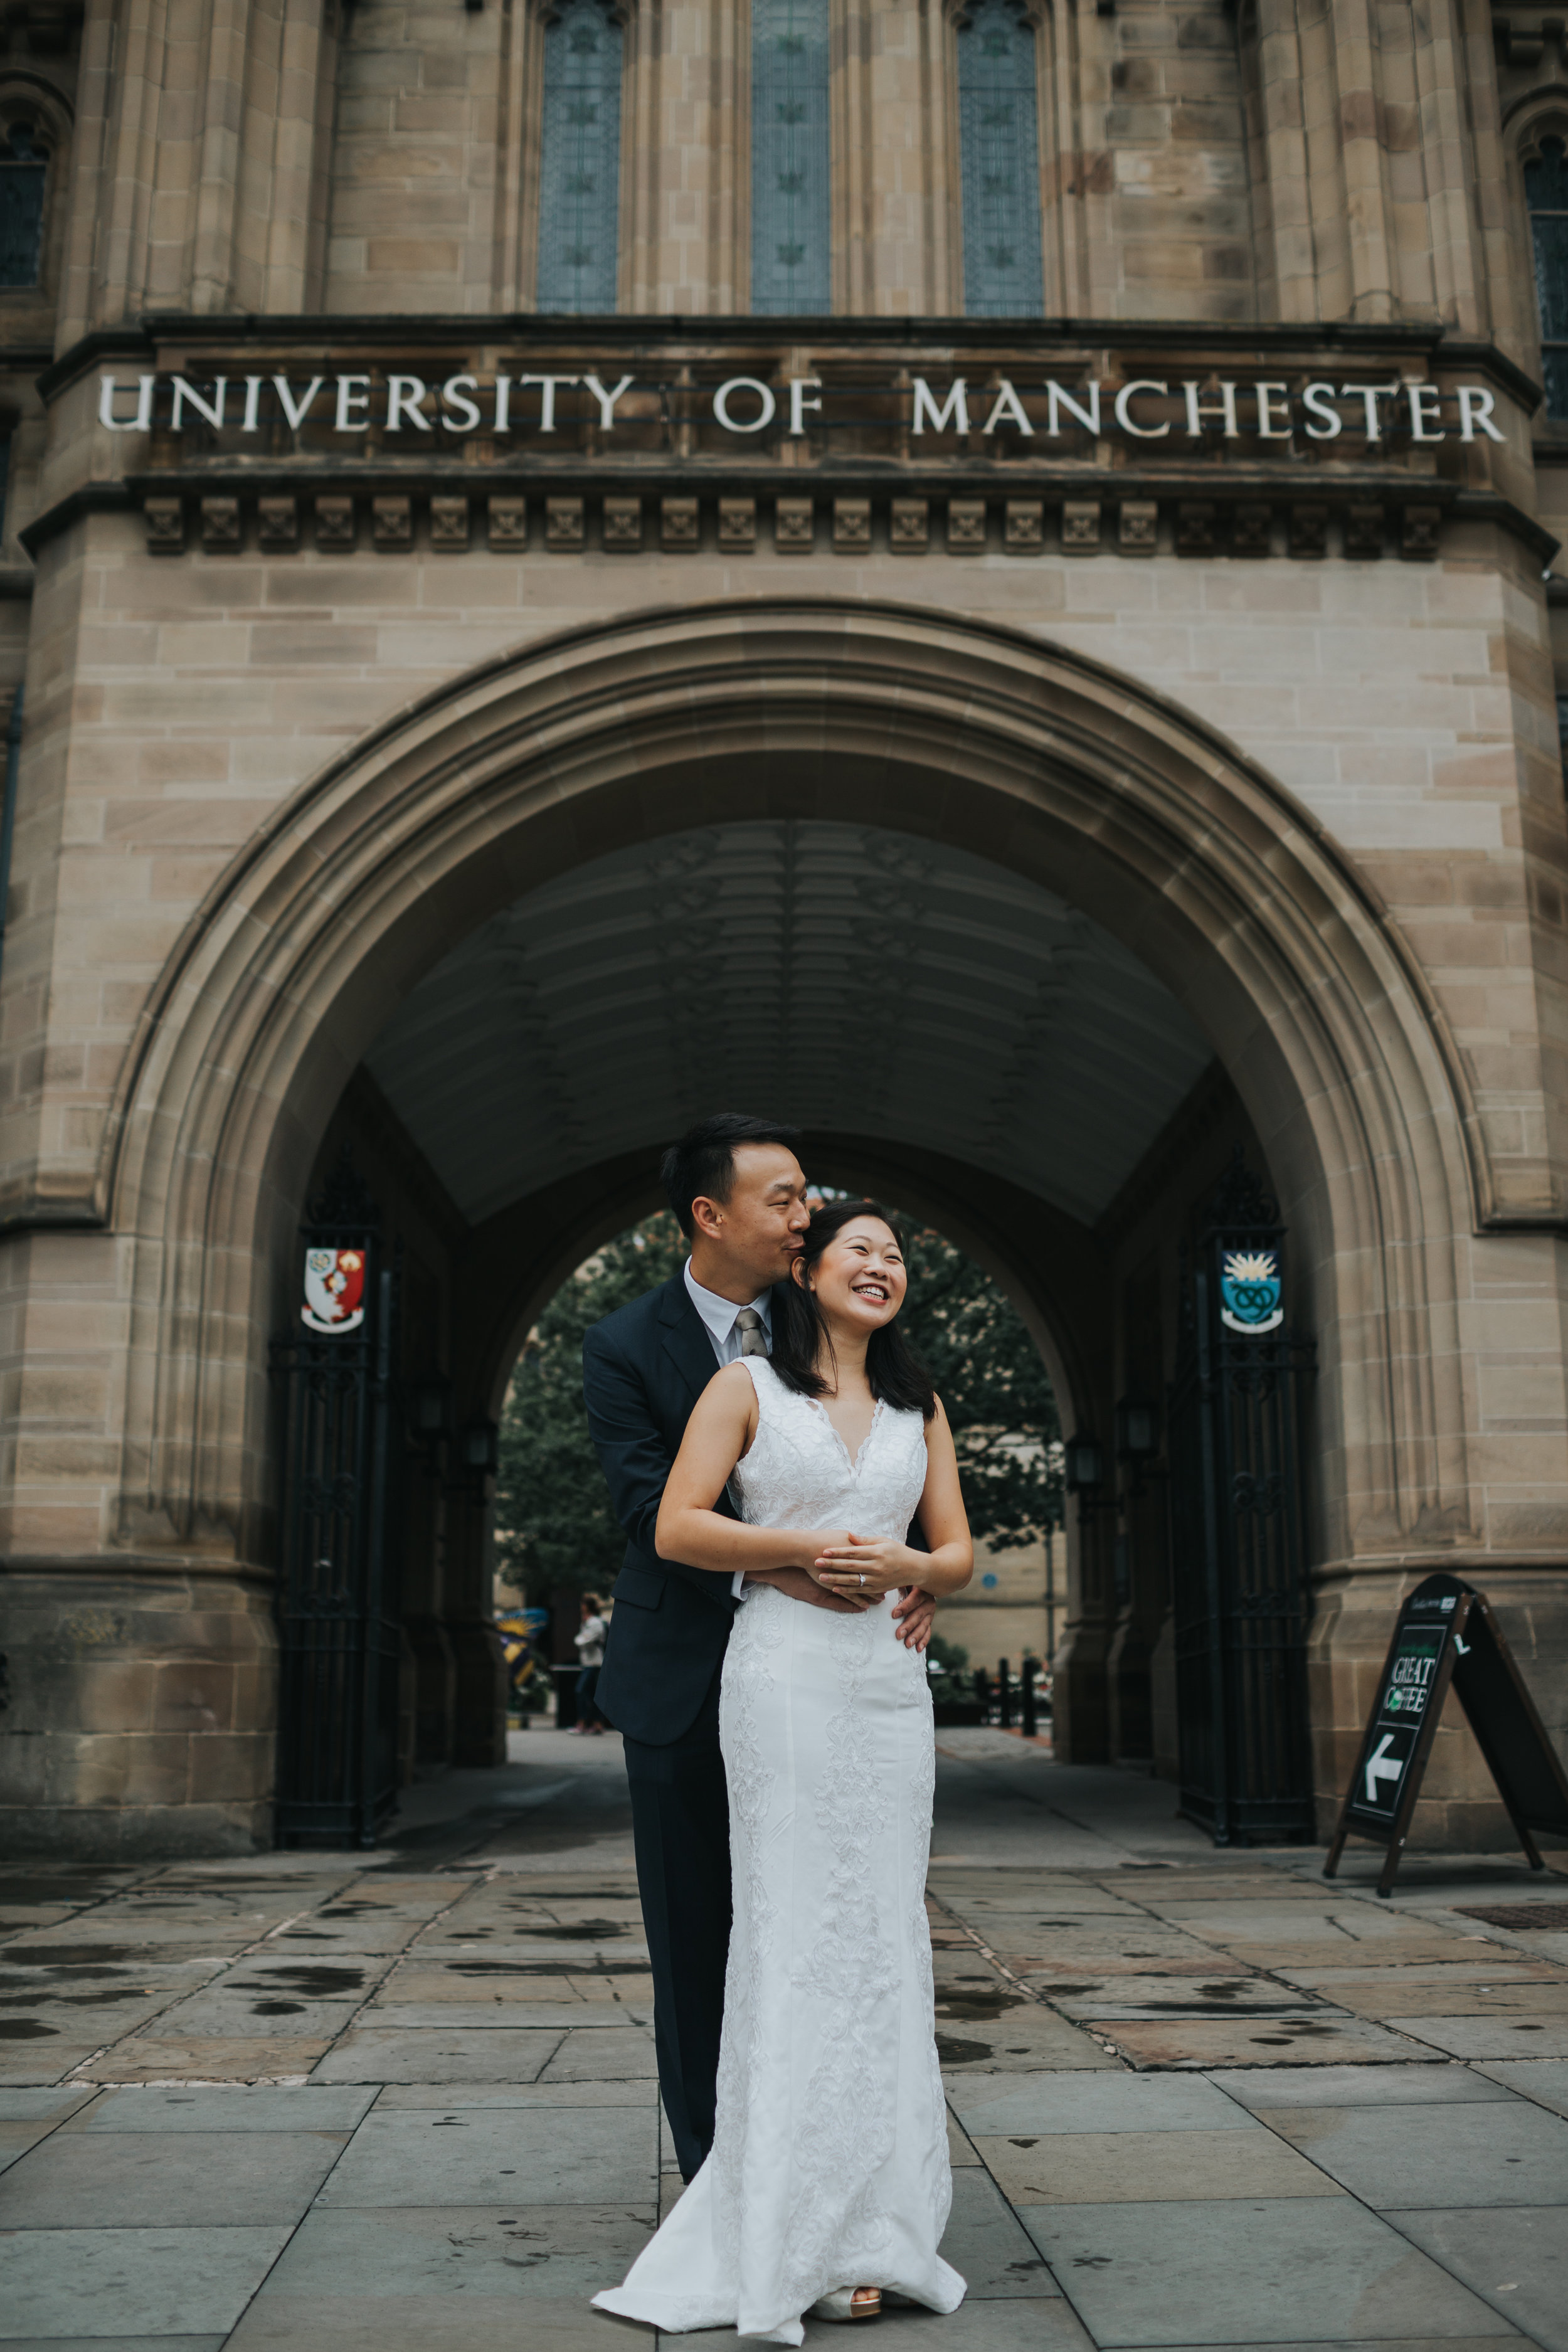 Couple have a cuddle in the Manchester university archway.